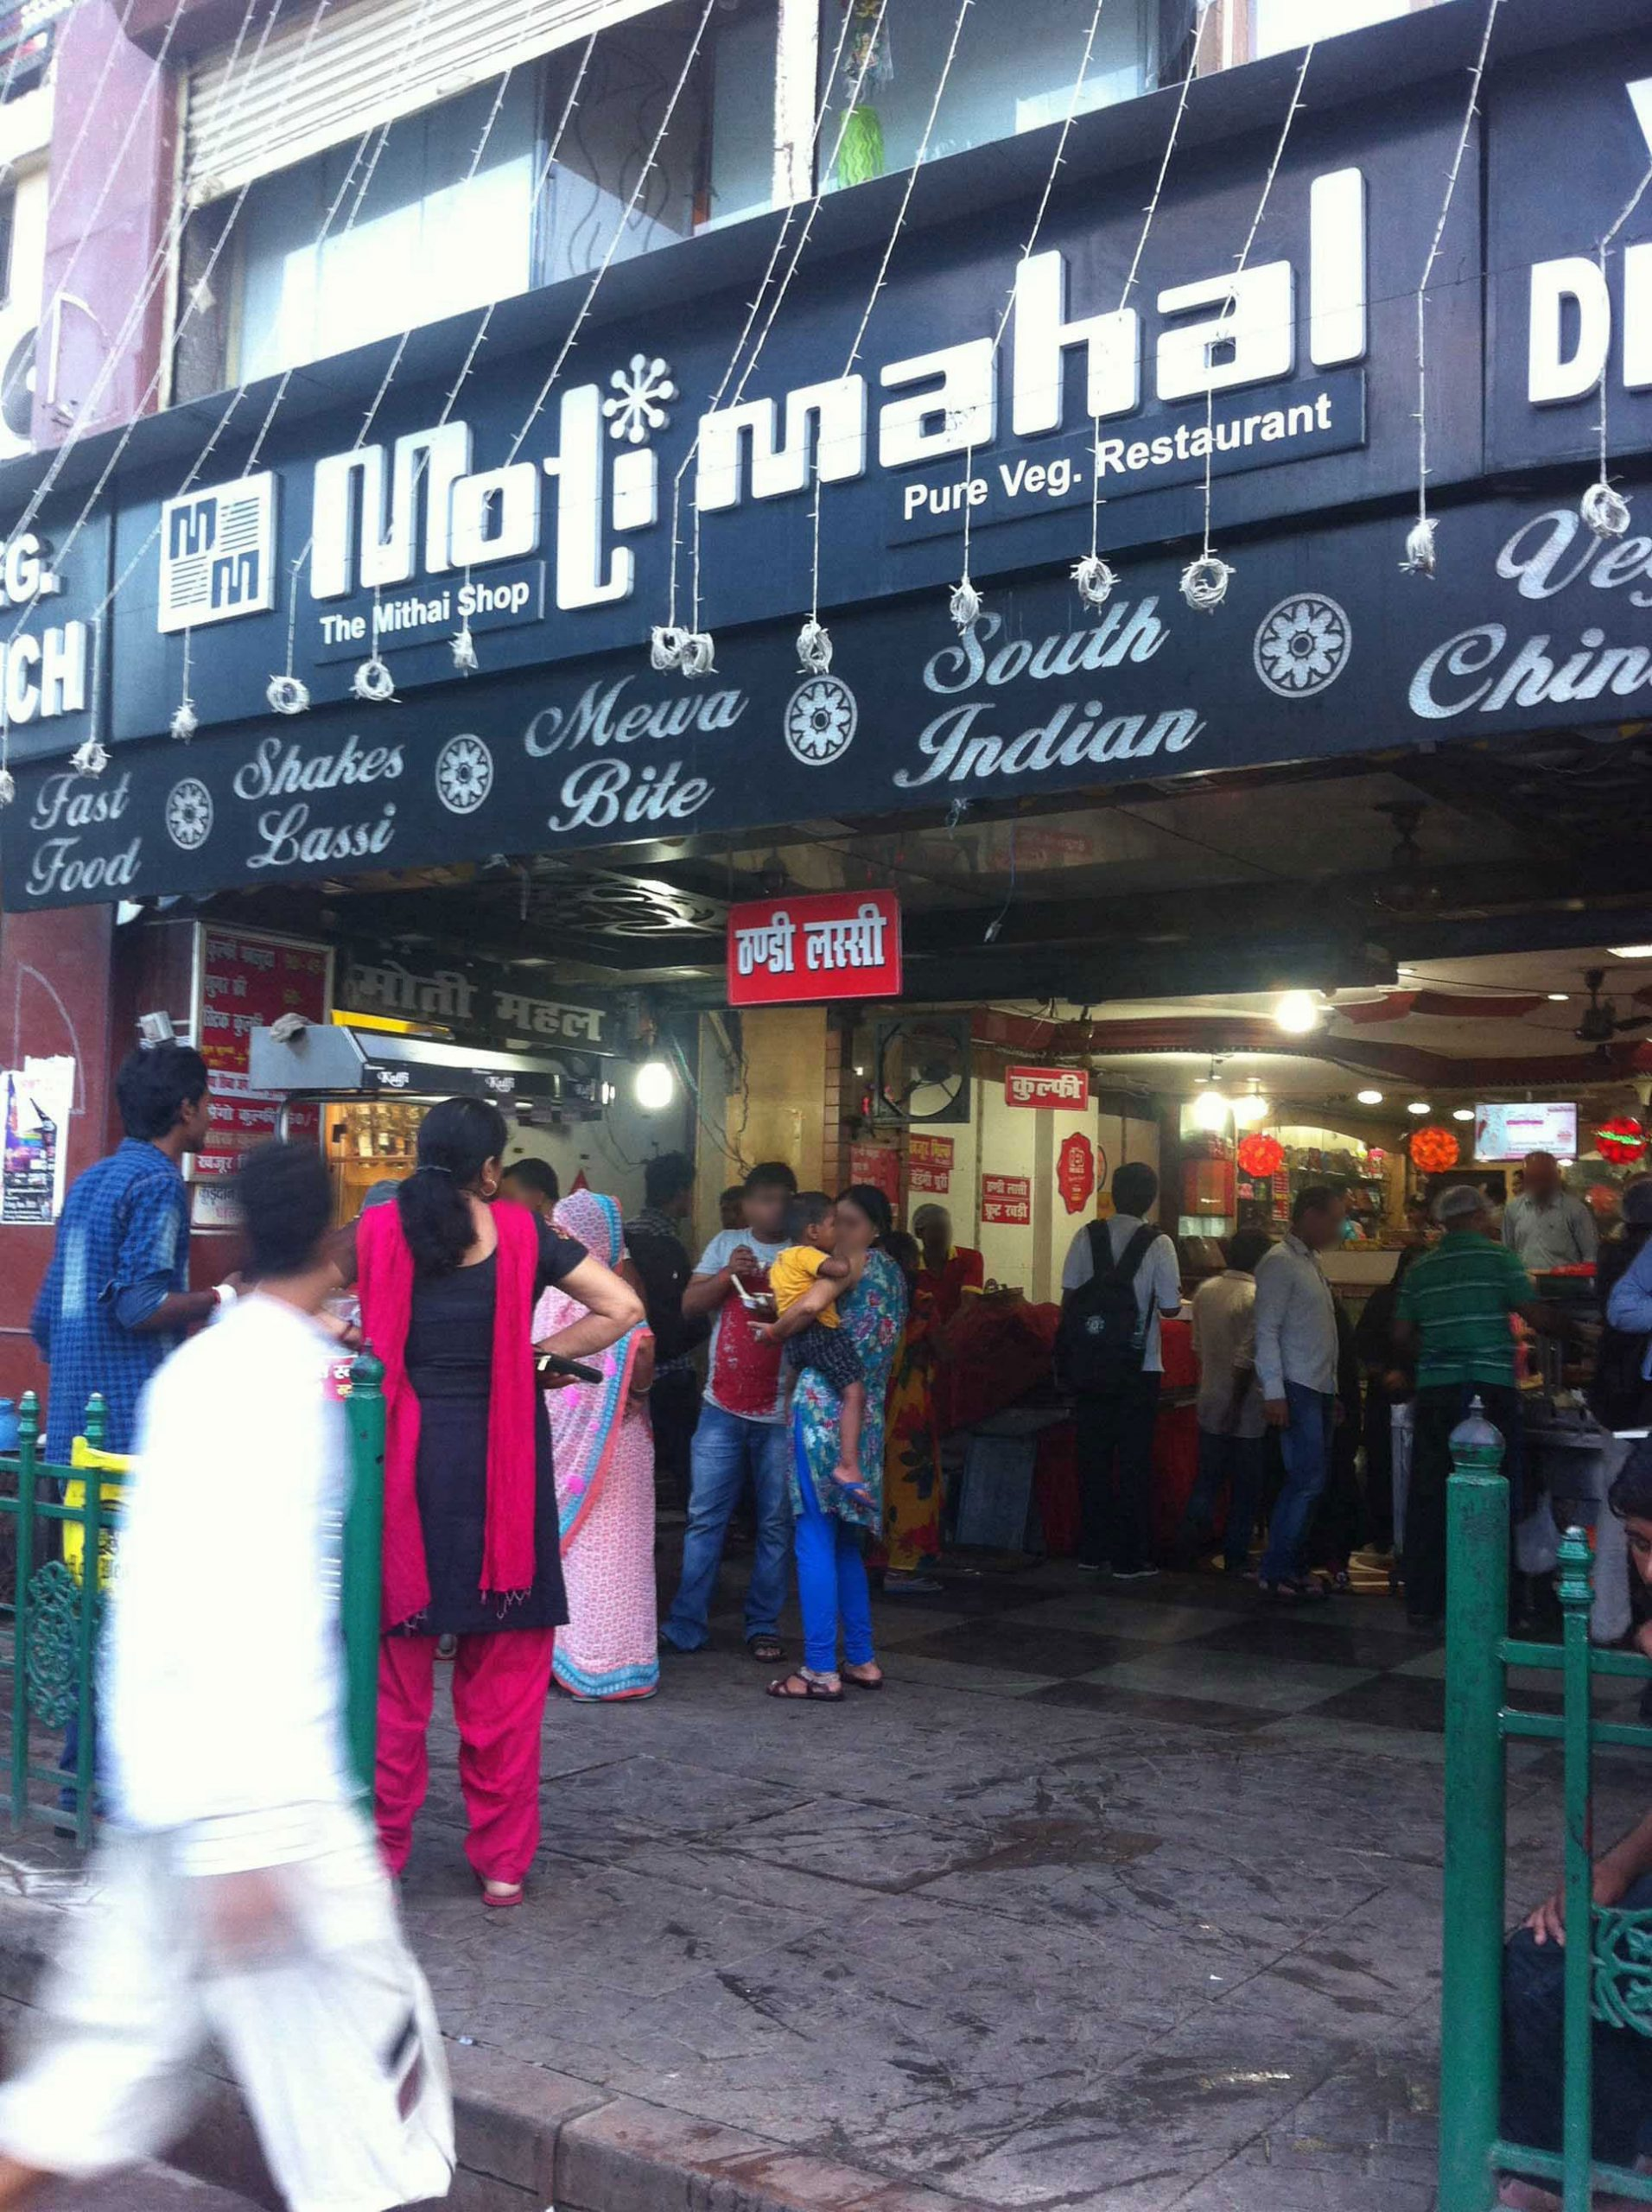 Moti Mahal - Popular Street Food Joints in Lucknow That One Must Not Miss